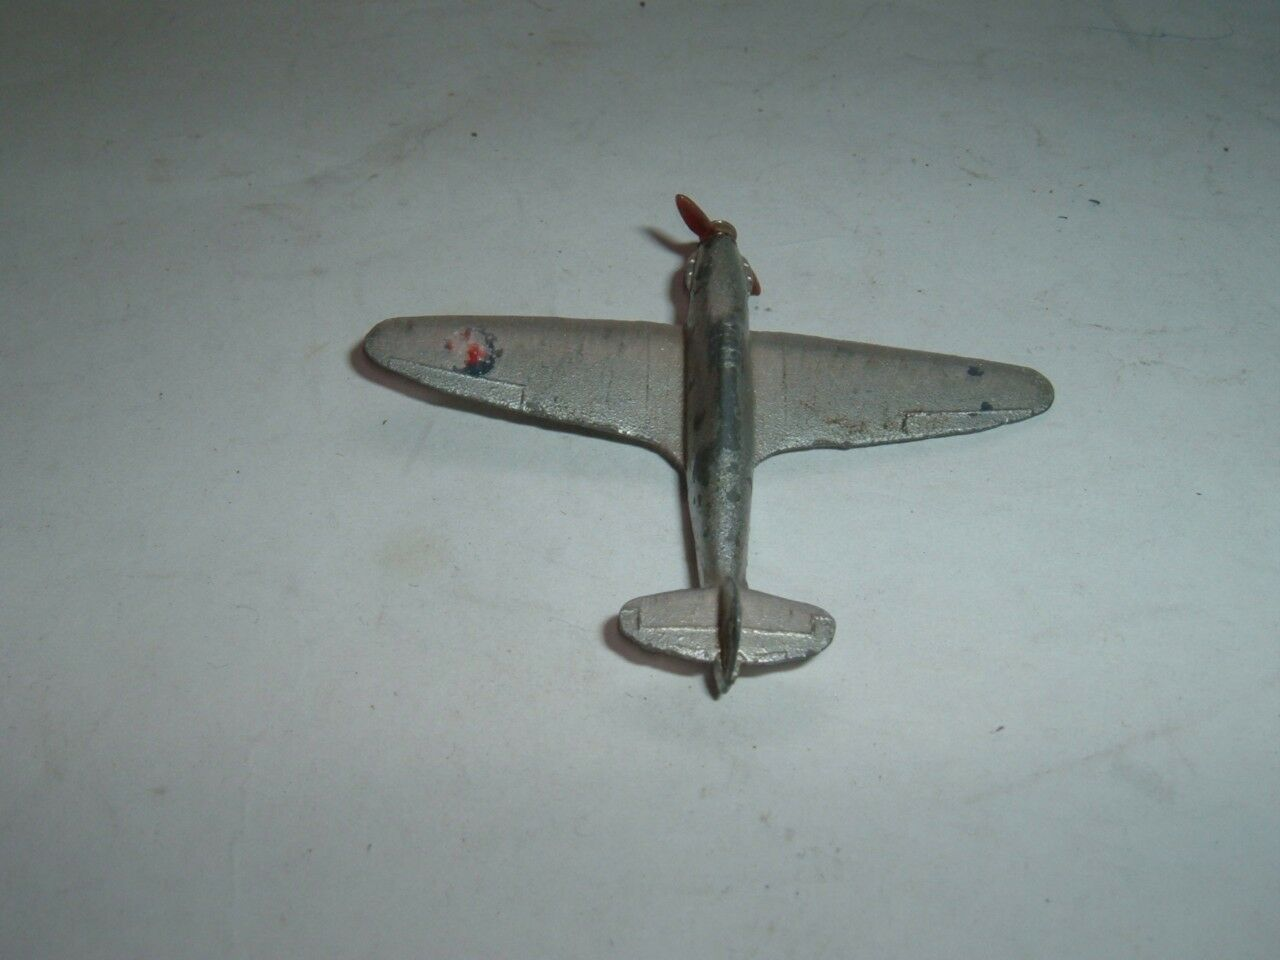 DINKY TOYS 62S HAWKER HURRICANE EARLY VINTAGE IN USED CONDITION SEE THE  PHOTOS